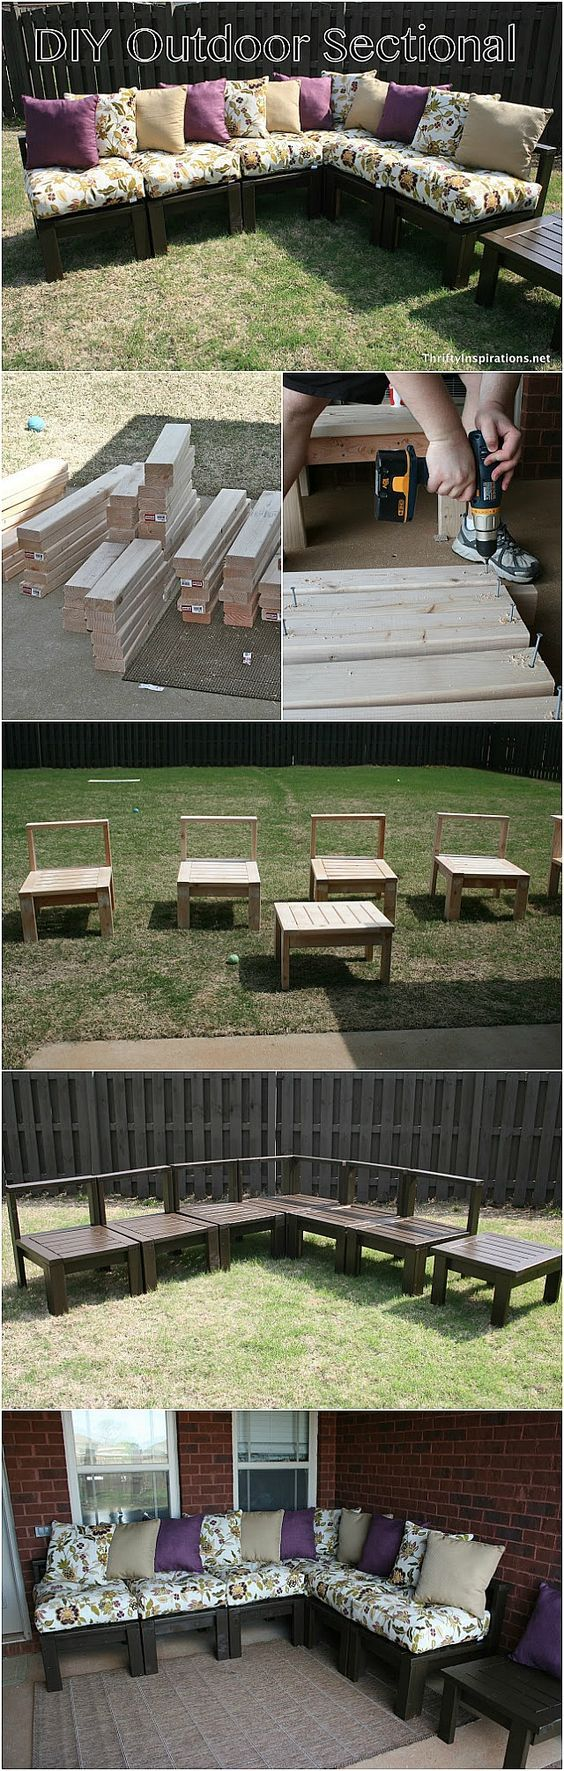 DIY Outdoor Sectional Tutorial - Pin it NOW and build it later!